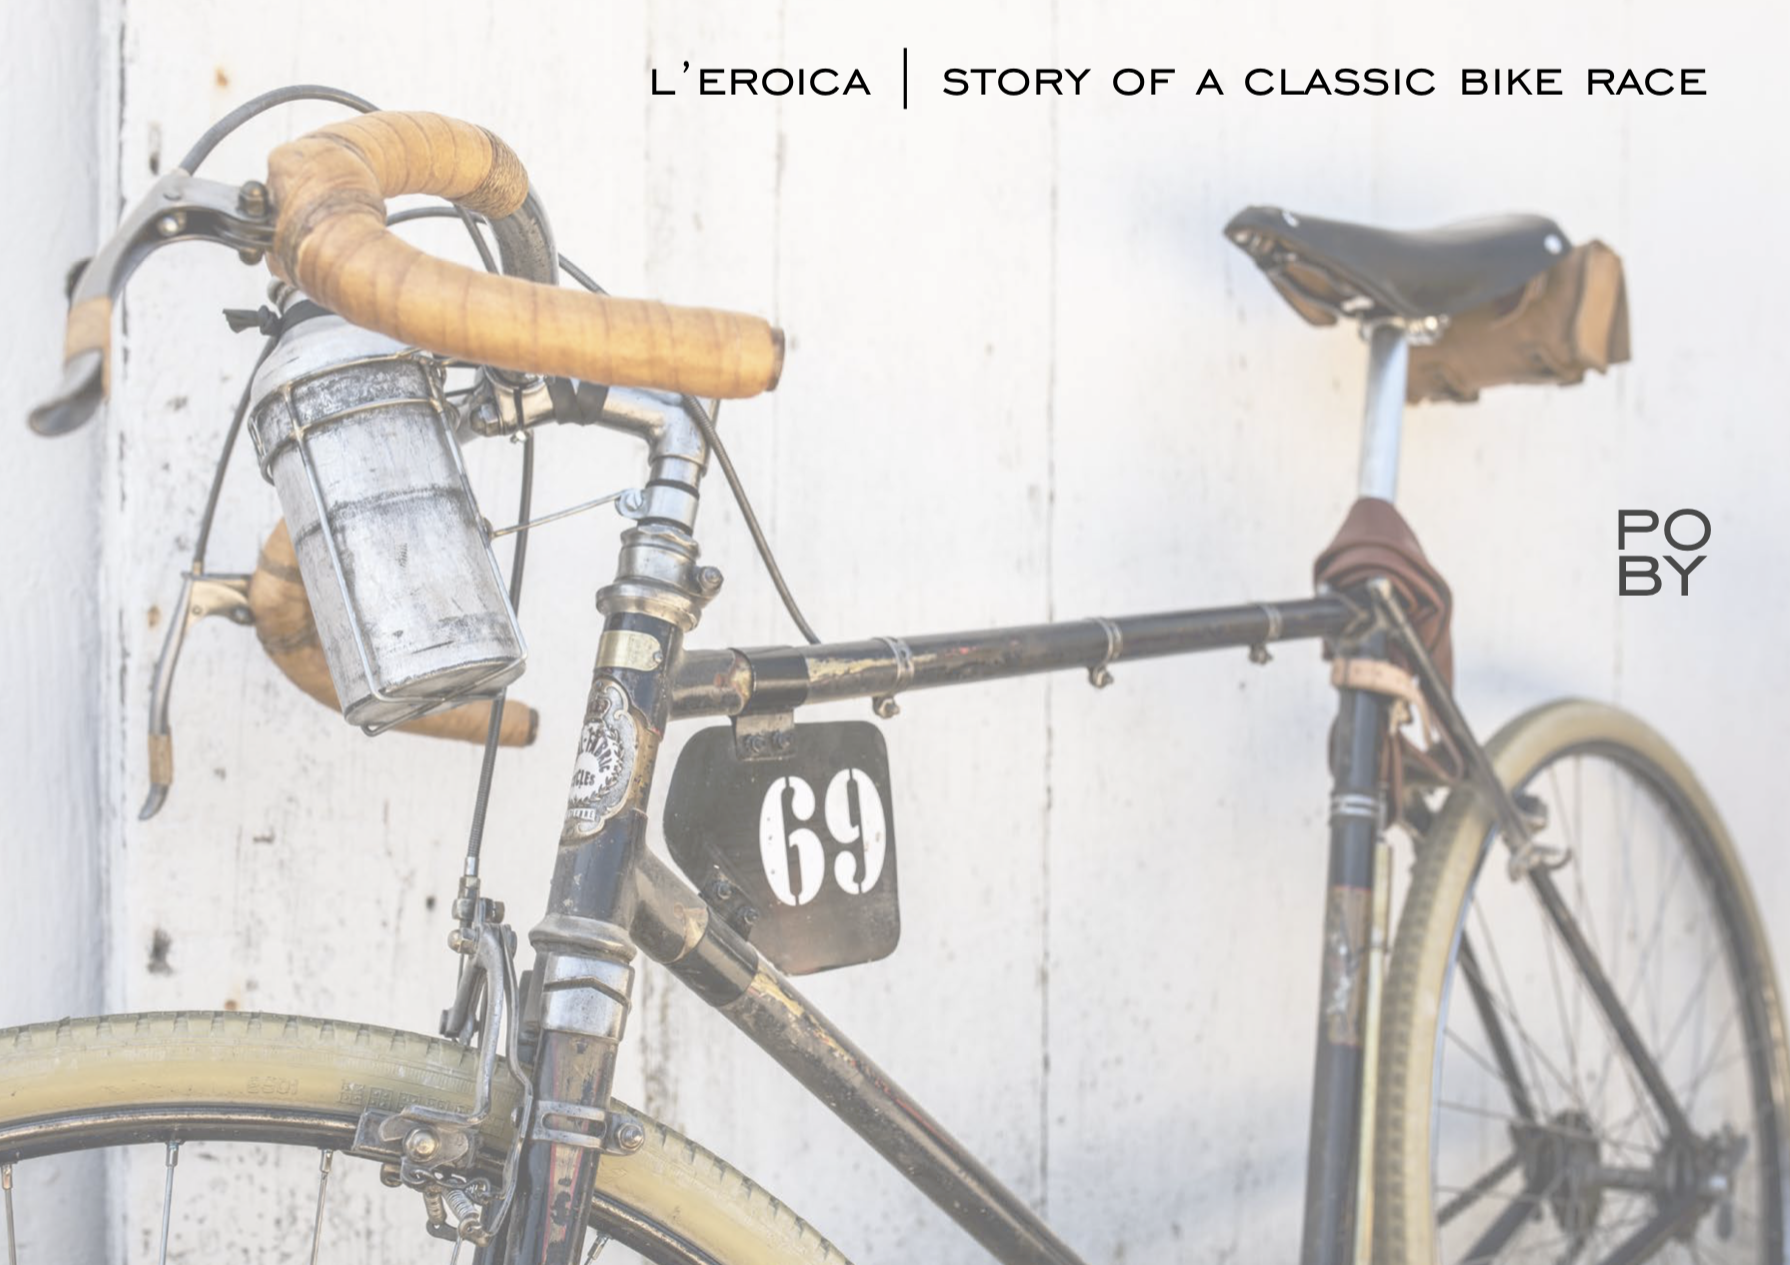 VINTAGE BICYCLE RACE - EDITORIAL STORY OF CLASSIC BICYCLE RACE